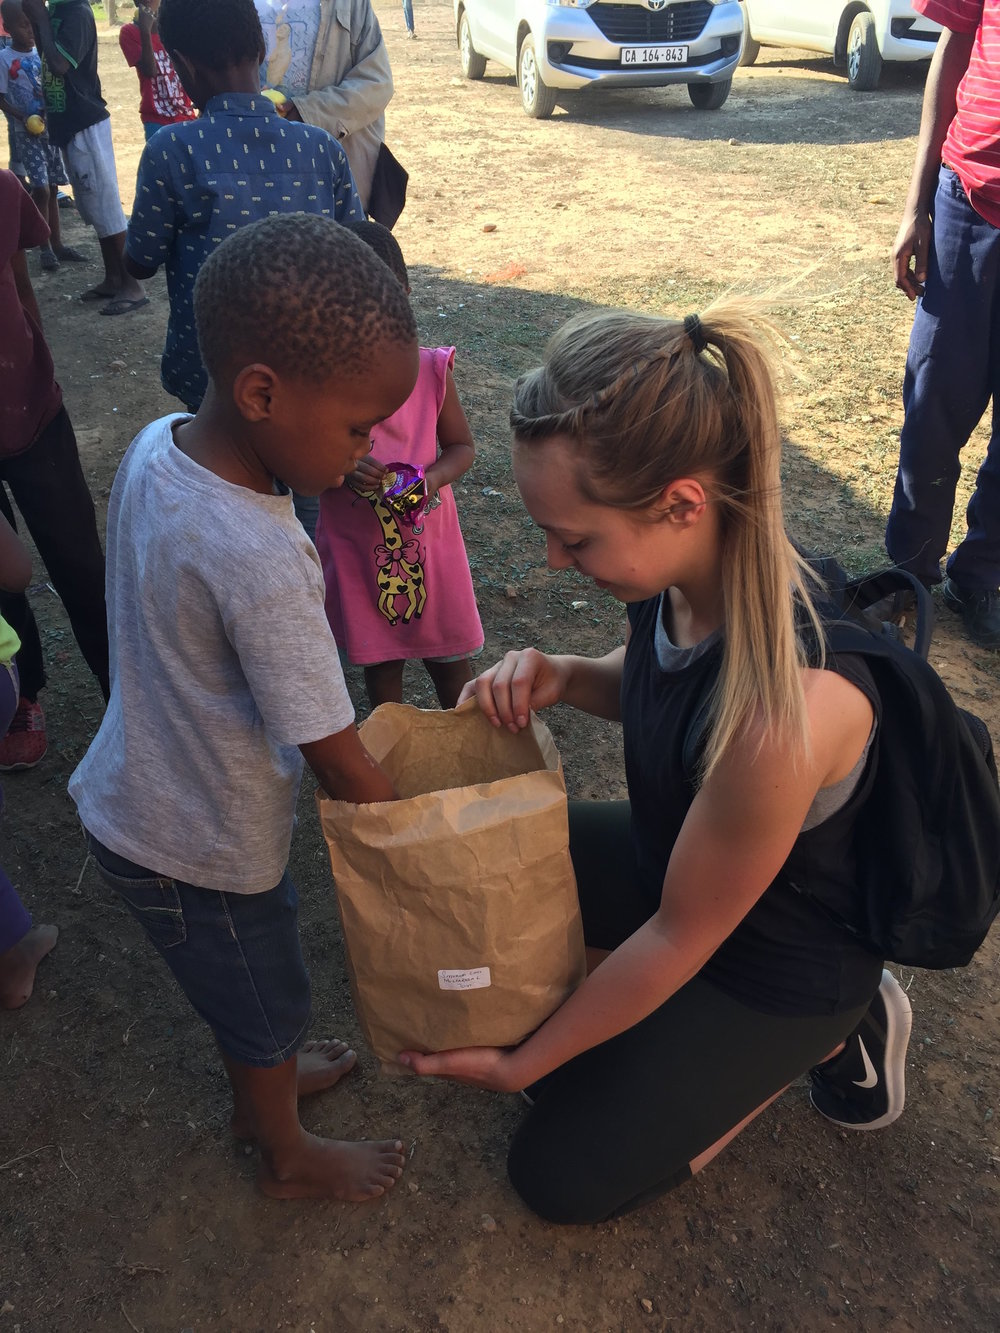 Alyssa distributing some snacks in Nomathamsanqa